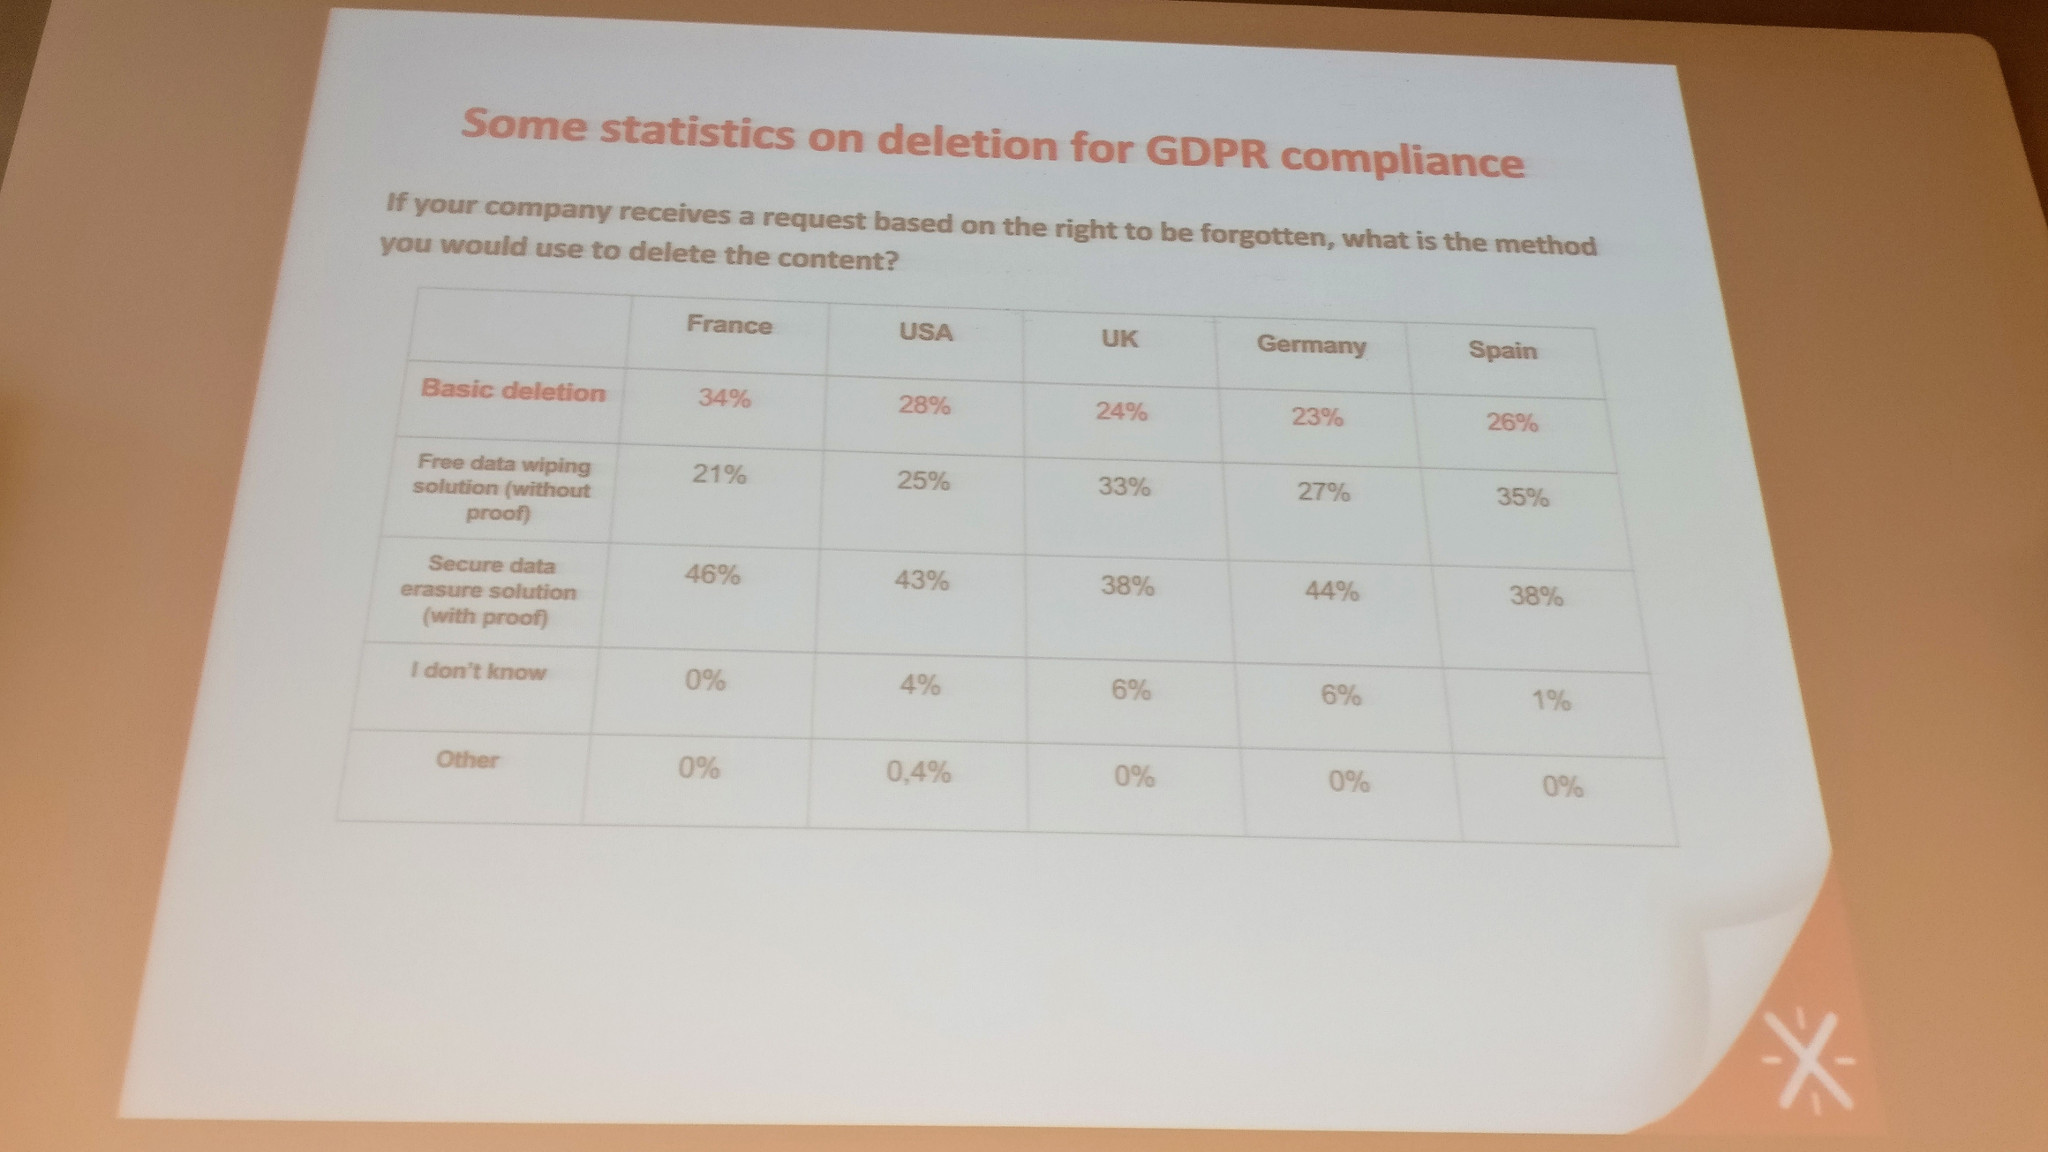 Some statistics on deletion for GDPR compliance